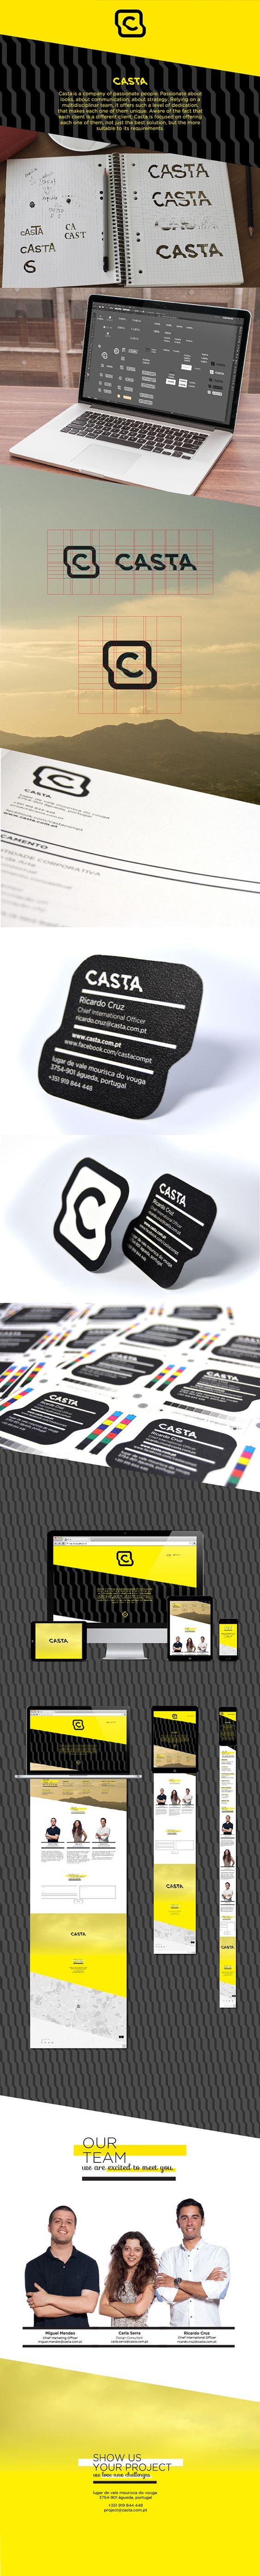 Casta / Corporate identity on Behance